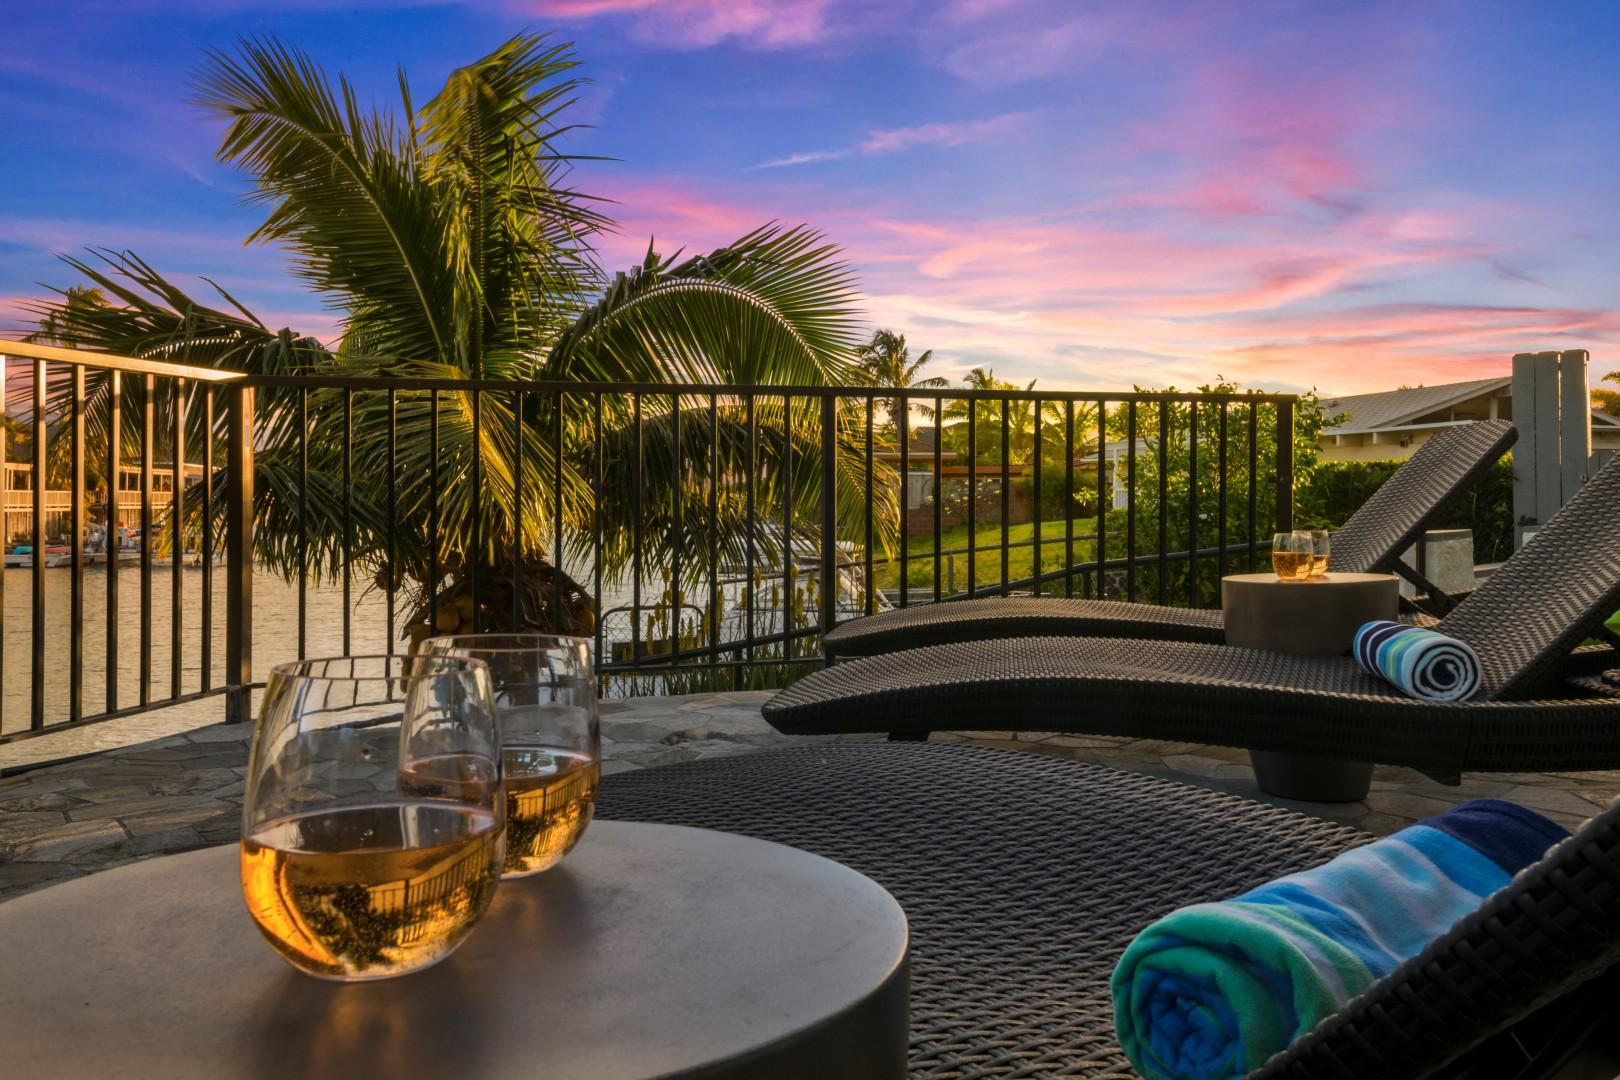 Check out the sun deck with marina views. Perfect spot to catch the sunrise and sunset sky!